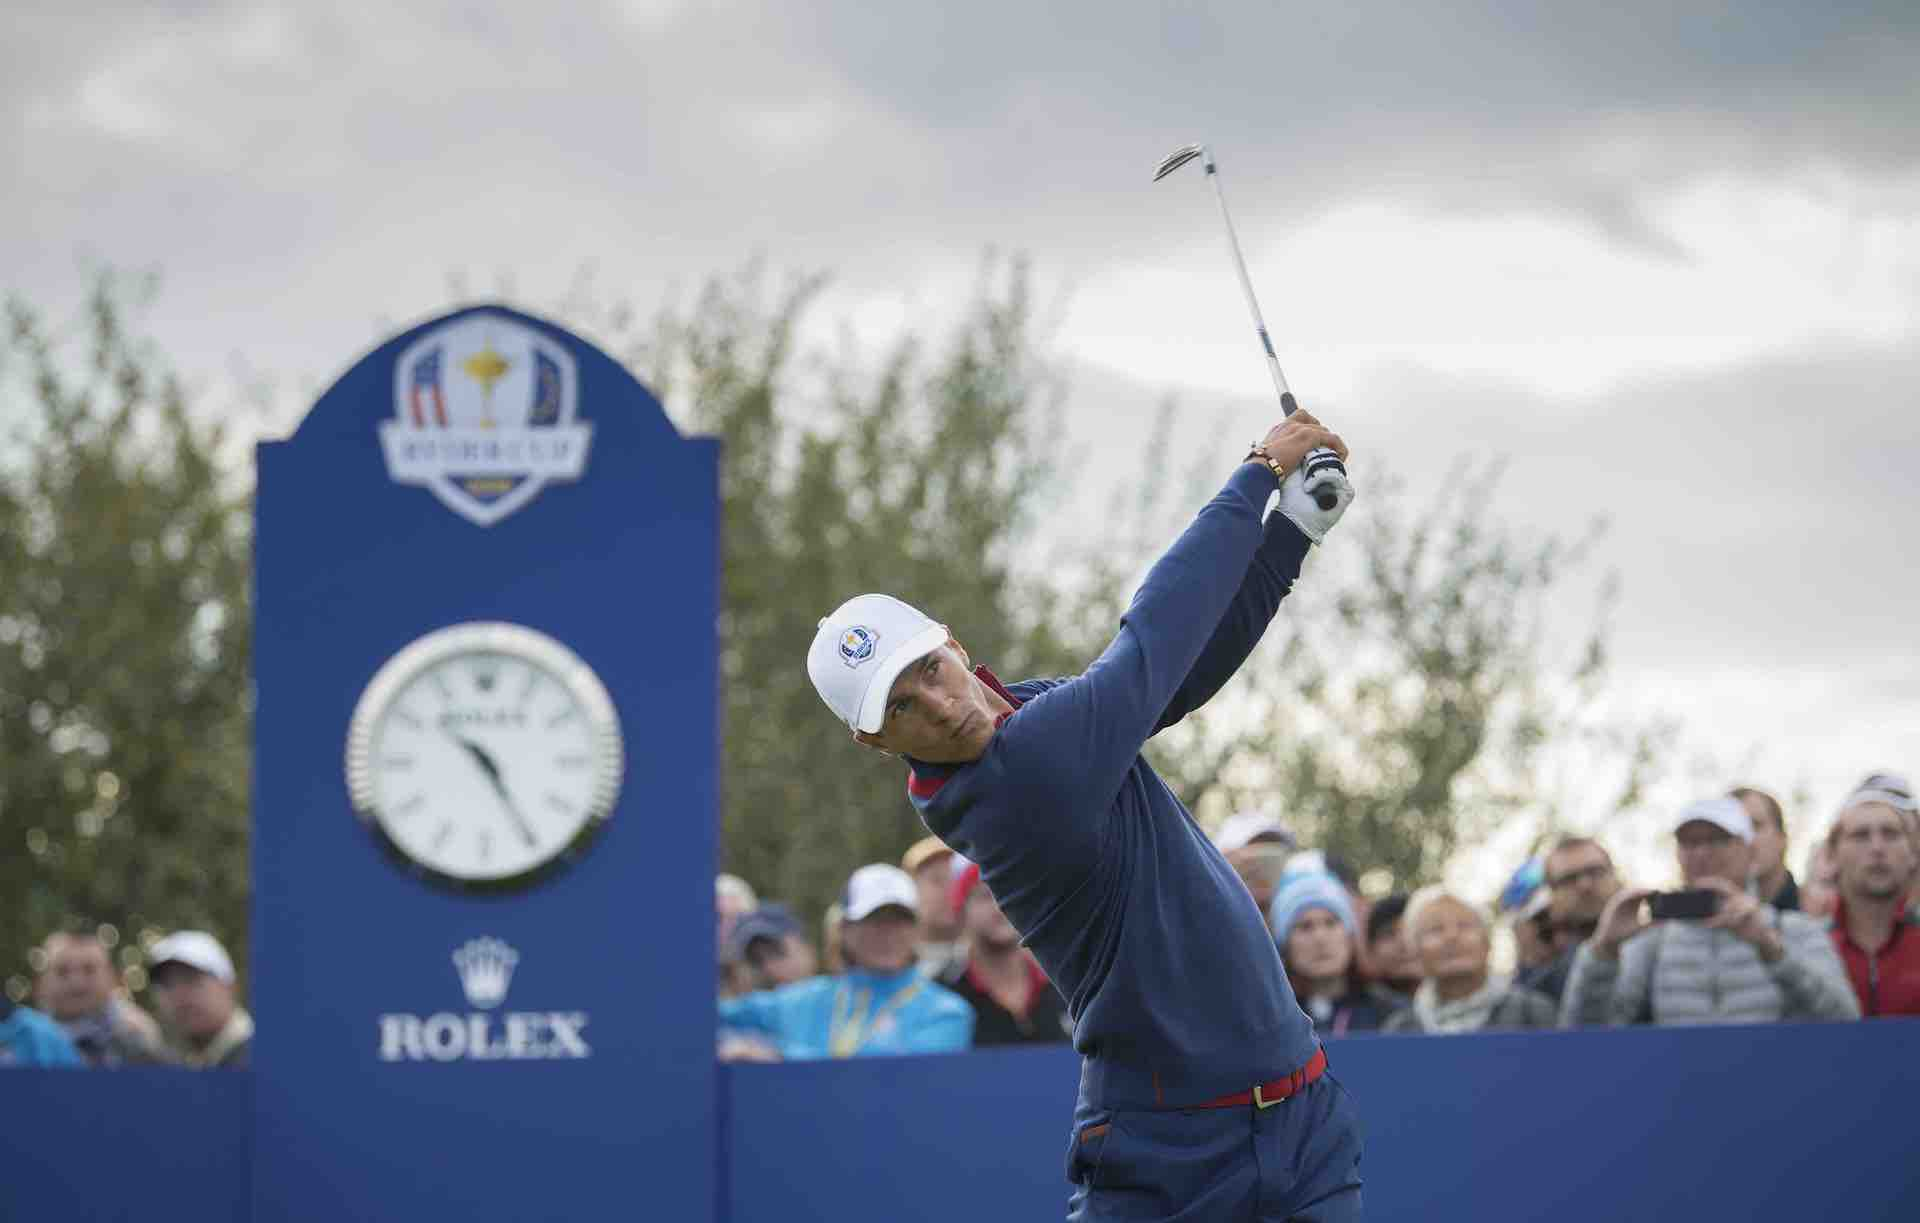 Final Rolex series event of 2018 welcomes Europe's elite golfers to Dubai